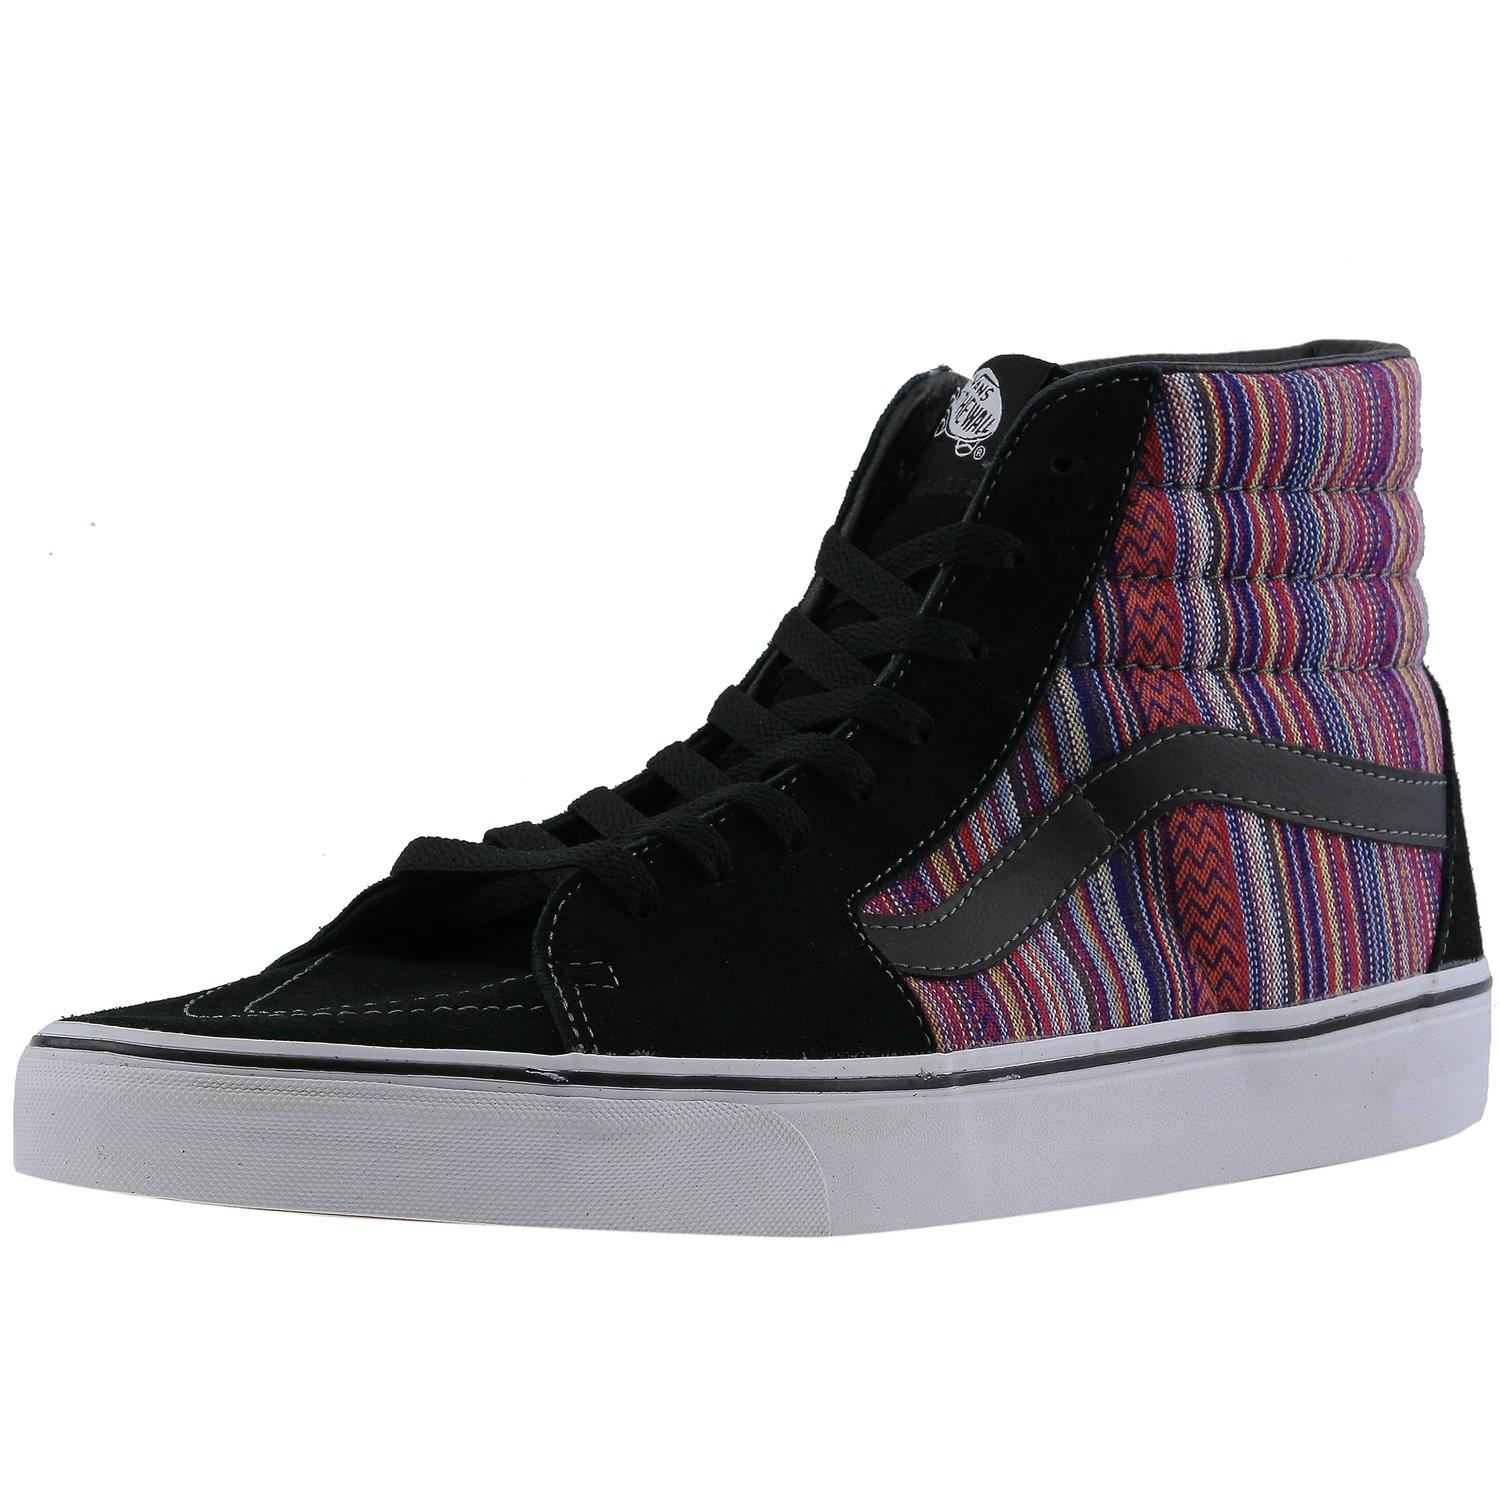 4210131a4b Lyst - Vans Sk8-hi Guate Weave Ankle-high Fabric Fashion Sneaker ...